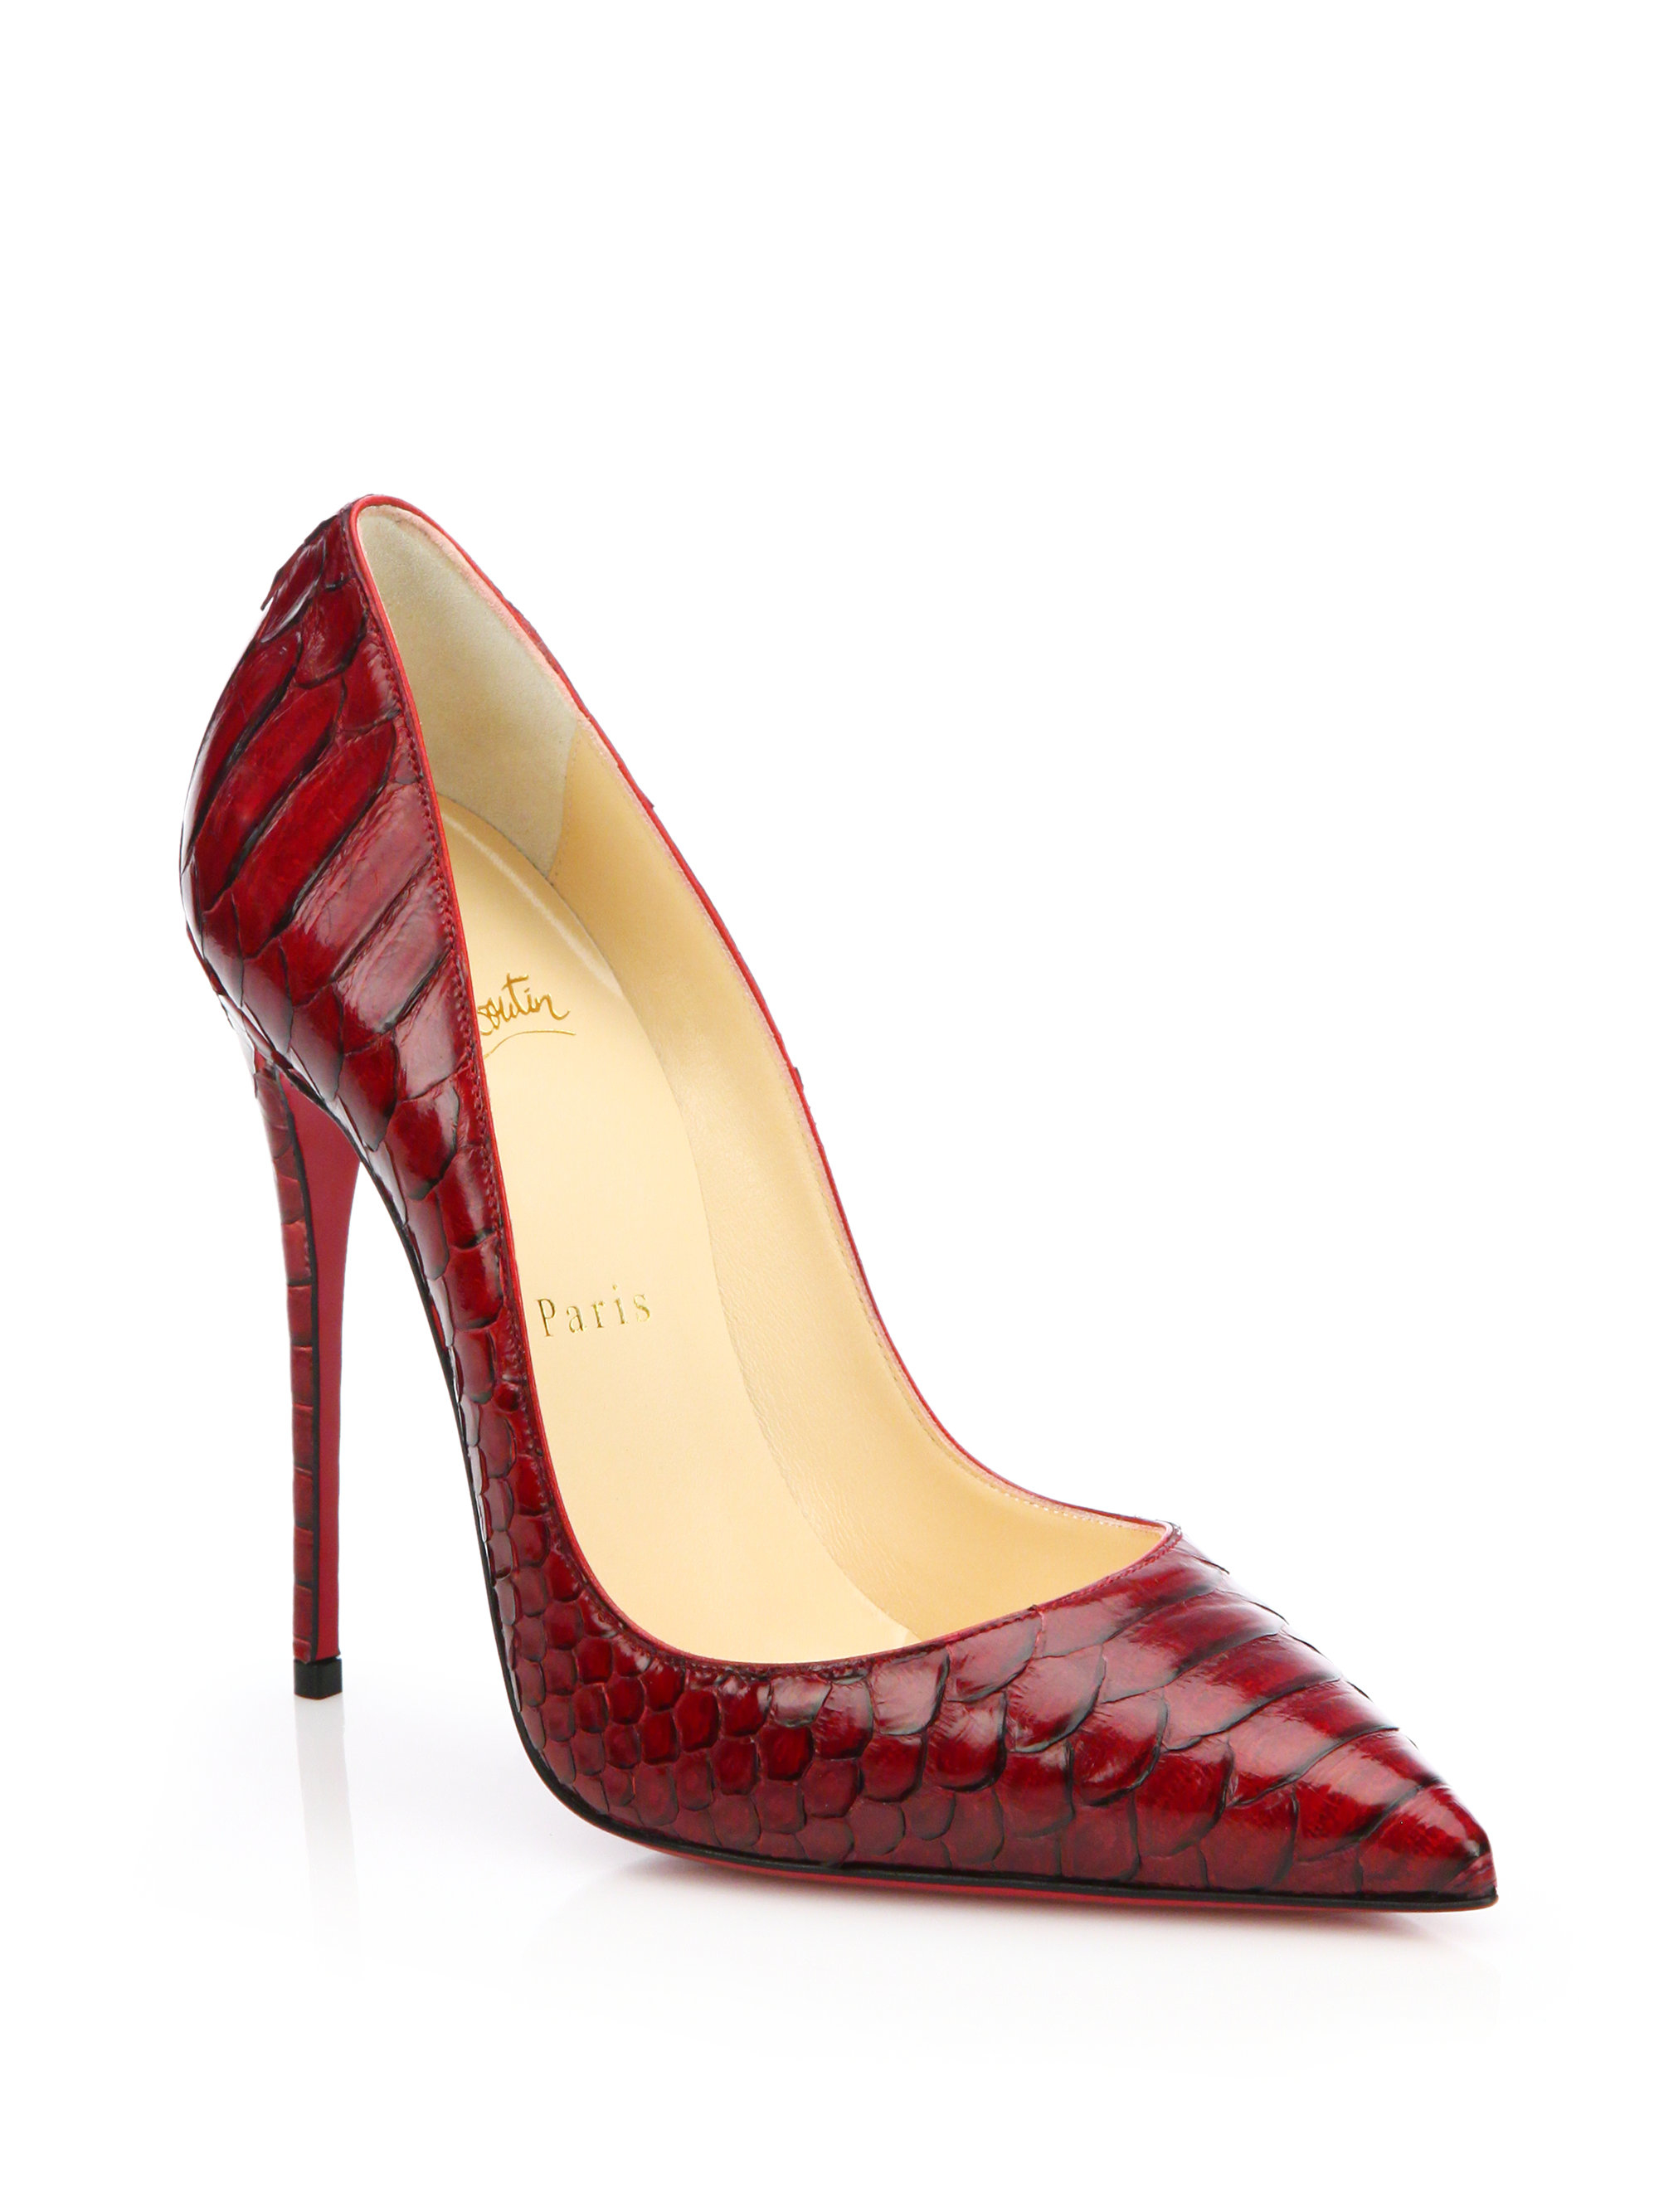 162981ece91e ... discount code for lyst christian louboutin so kate python pumps in red  ccf5c 8b7e4 ...